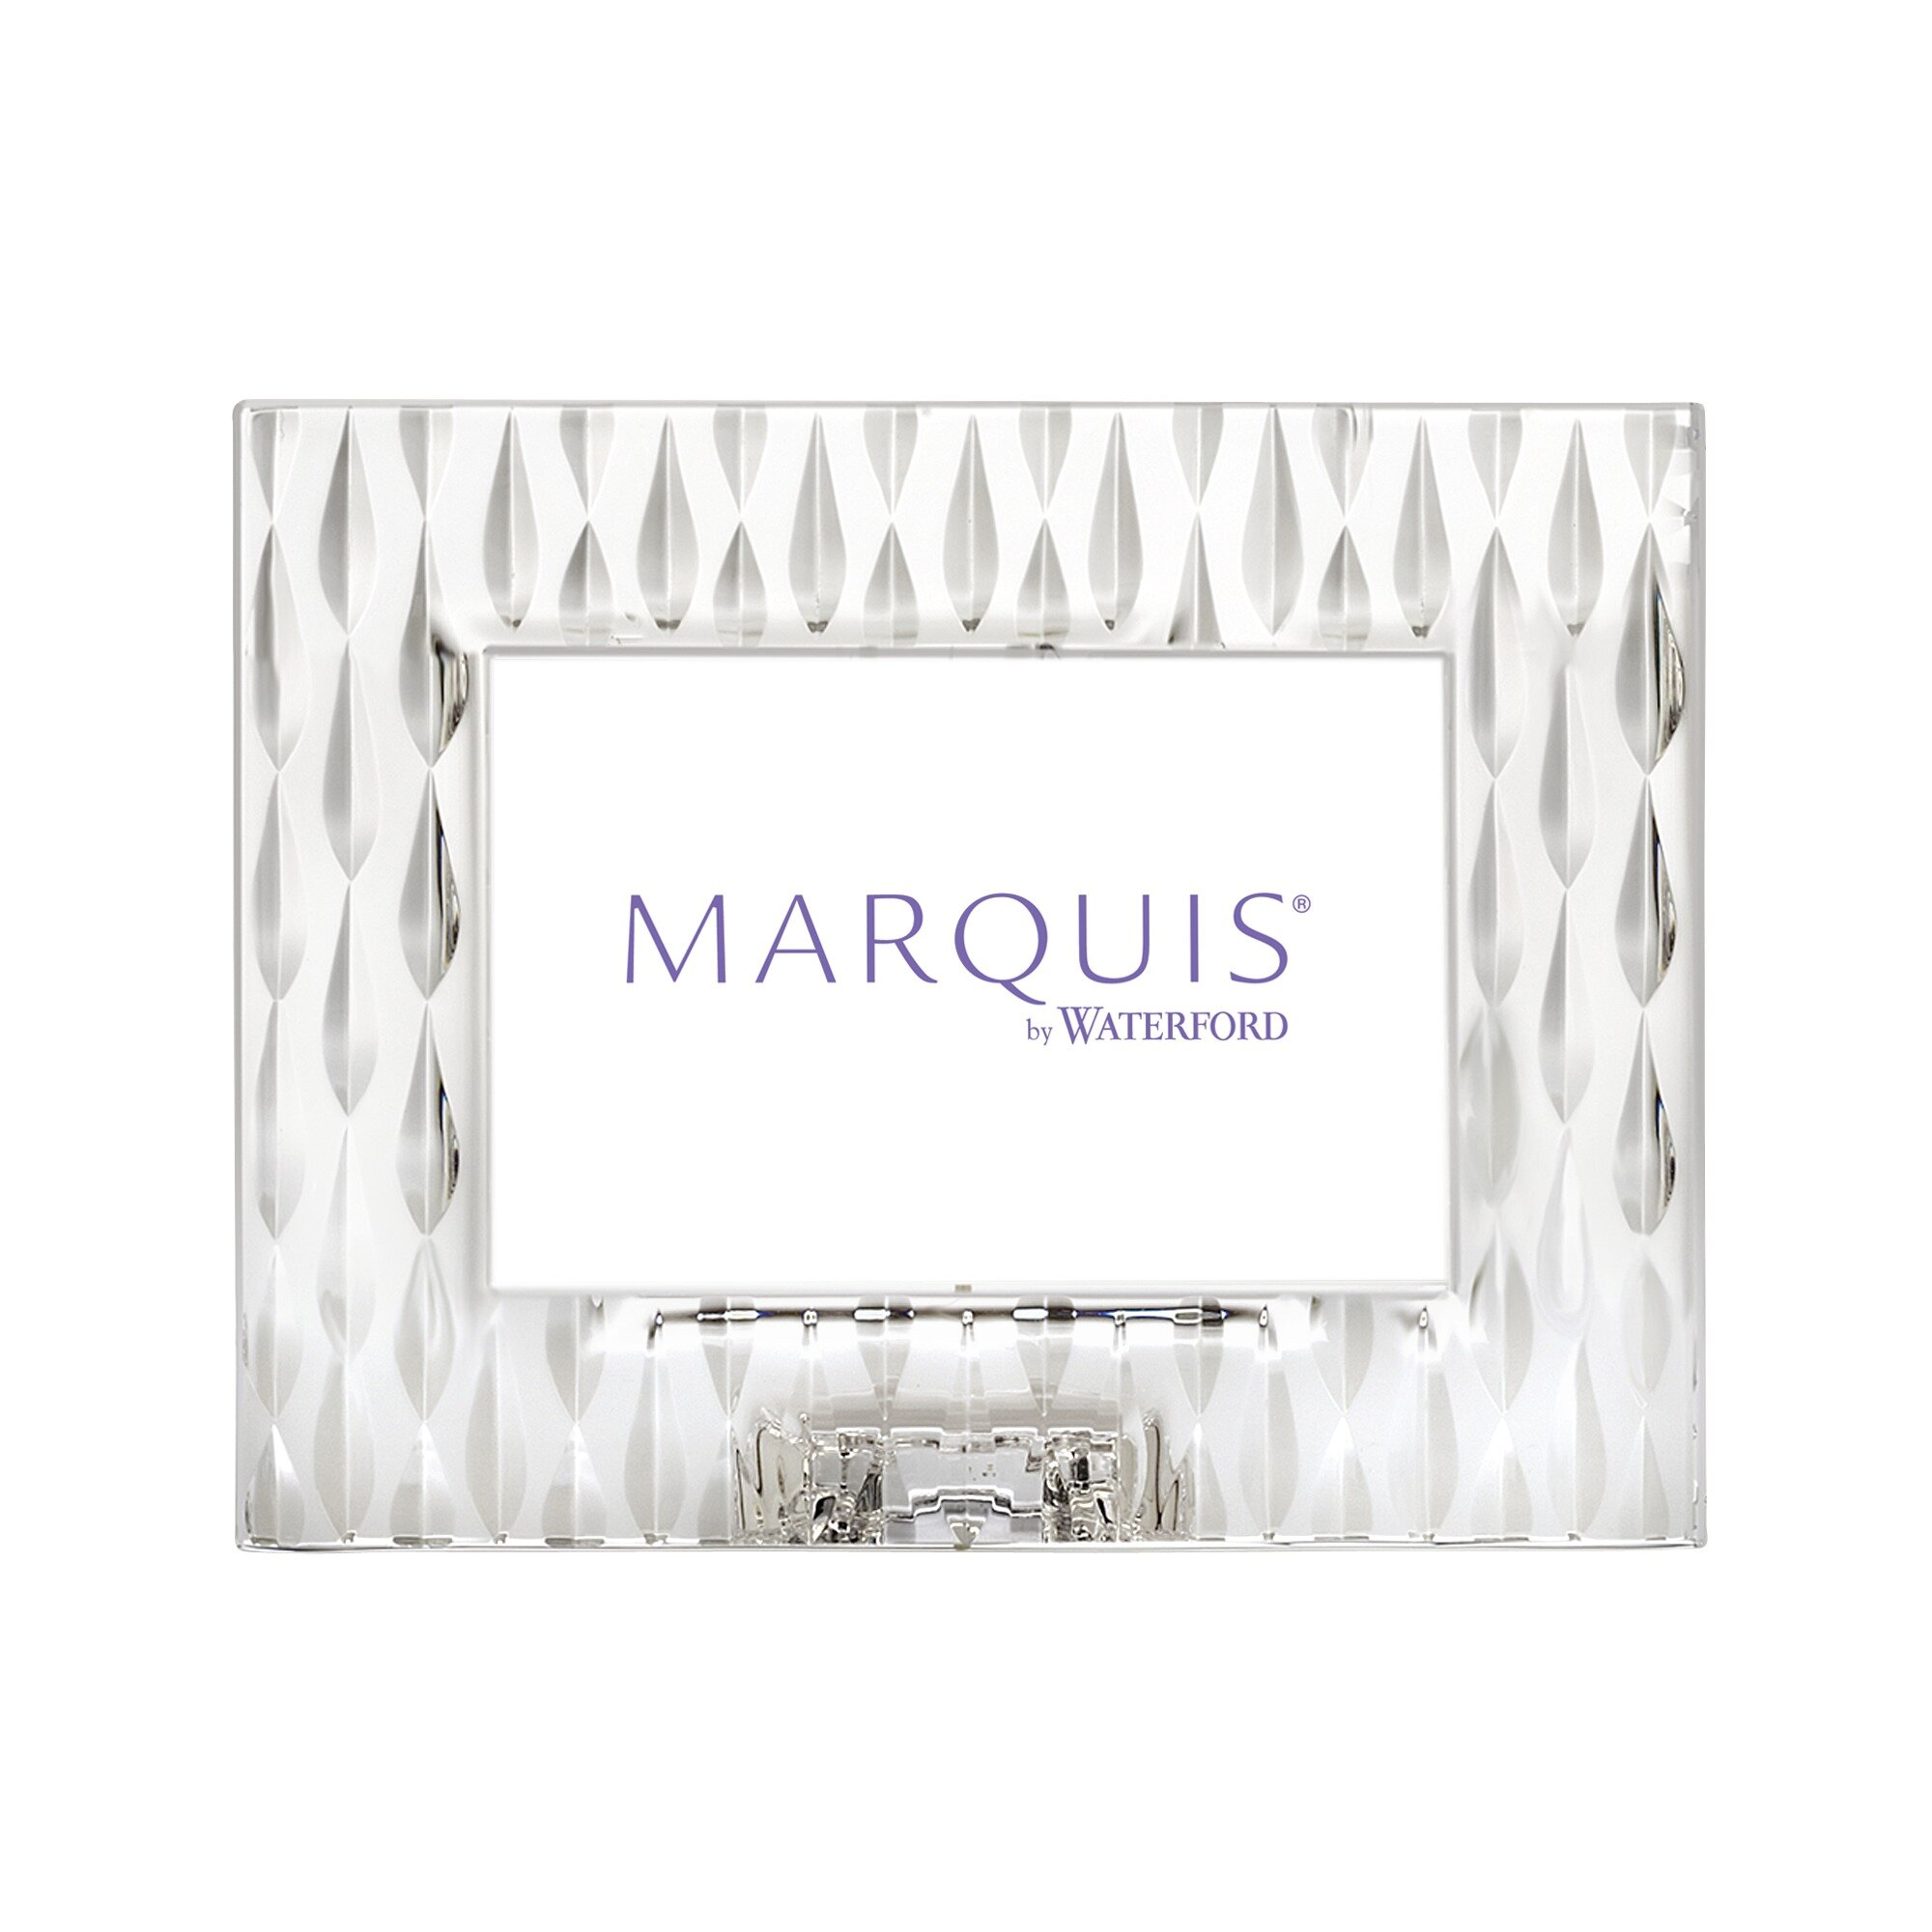 Marquis by Waterford Rainfall Picture Frame & Reviews | Wayfair